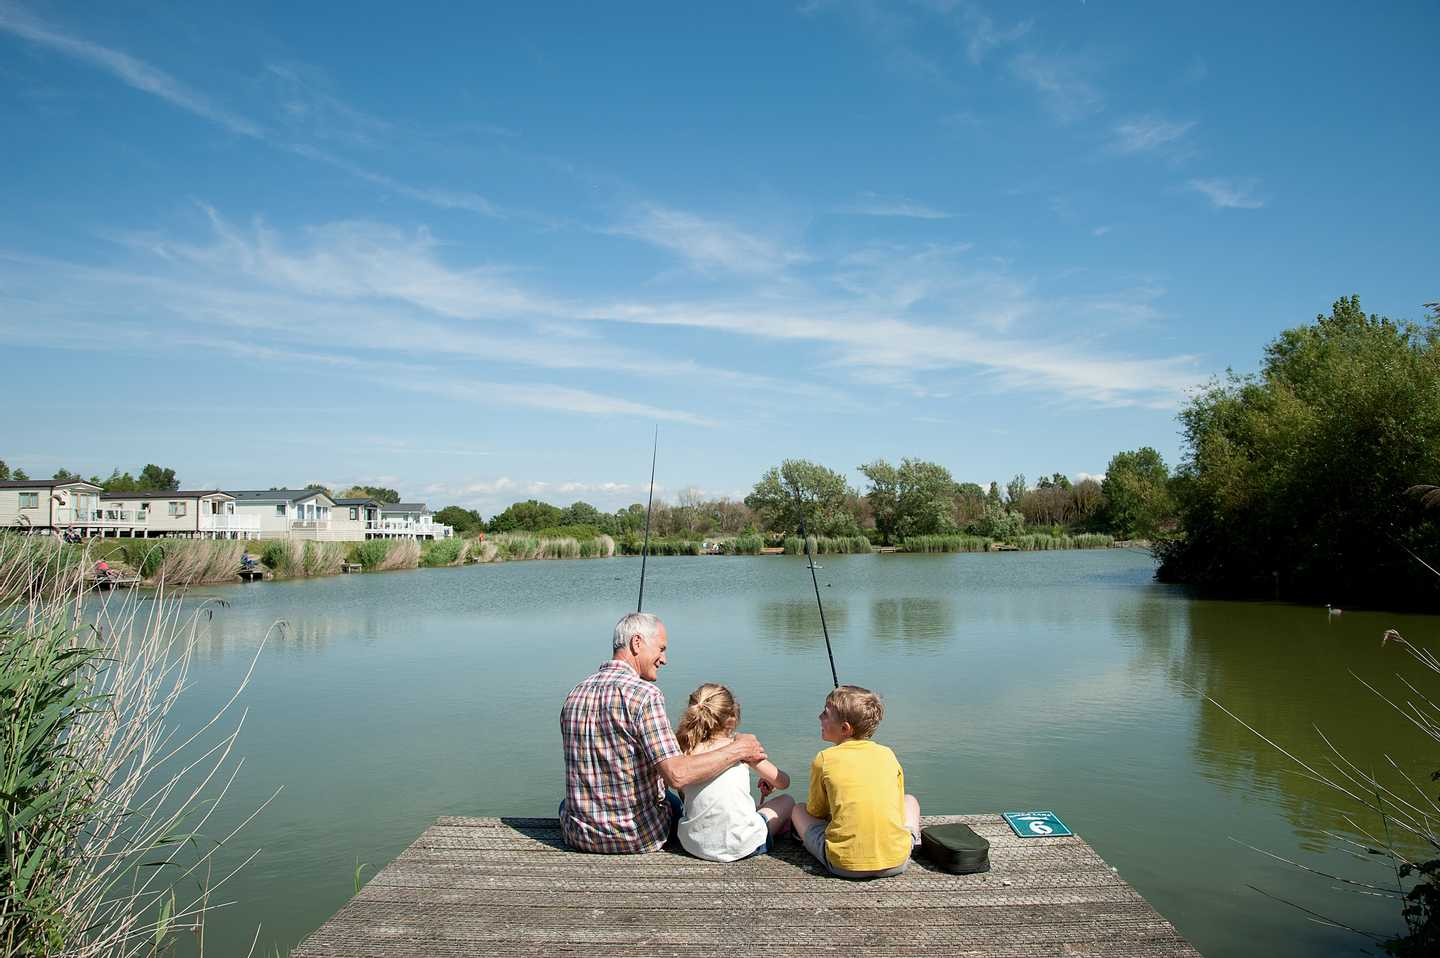 A man and two children perched on the side of a large lake with fishing rods on a sunny day